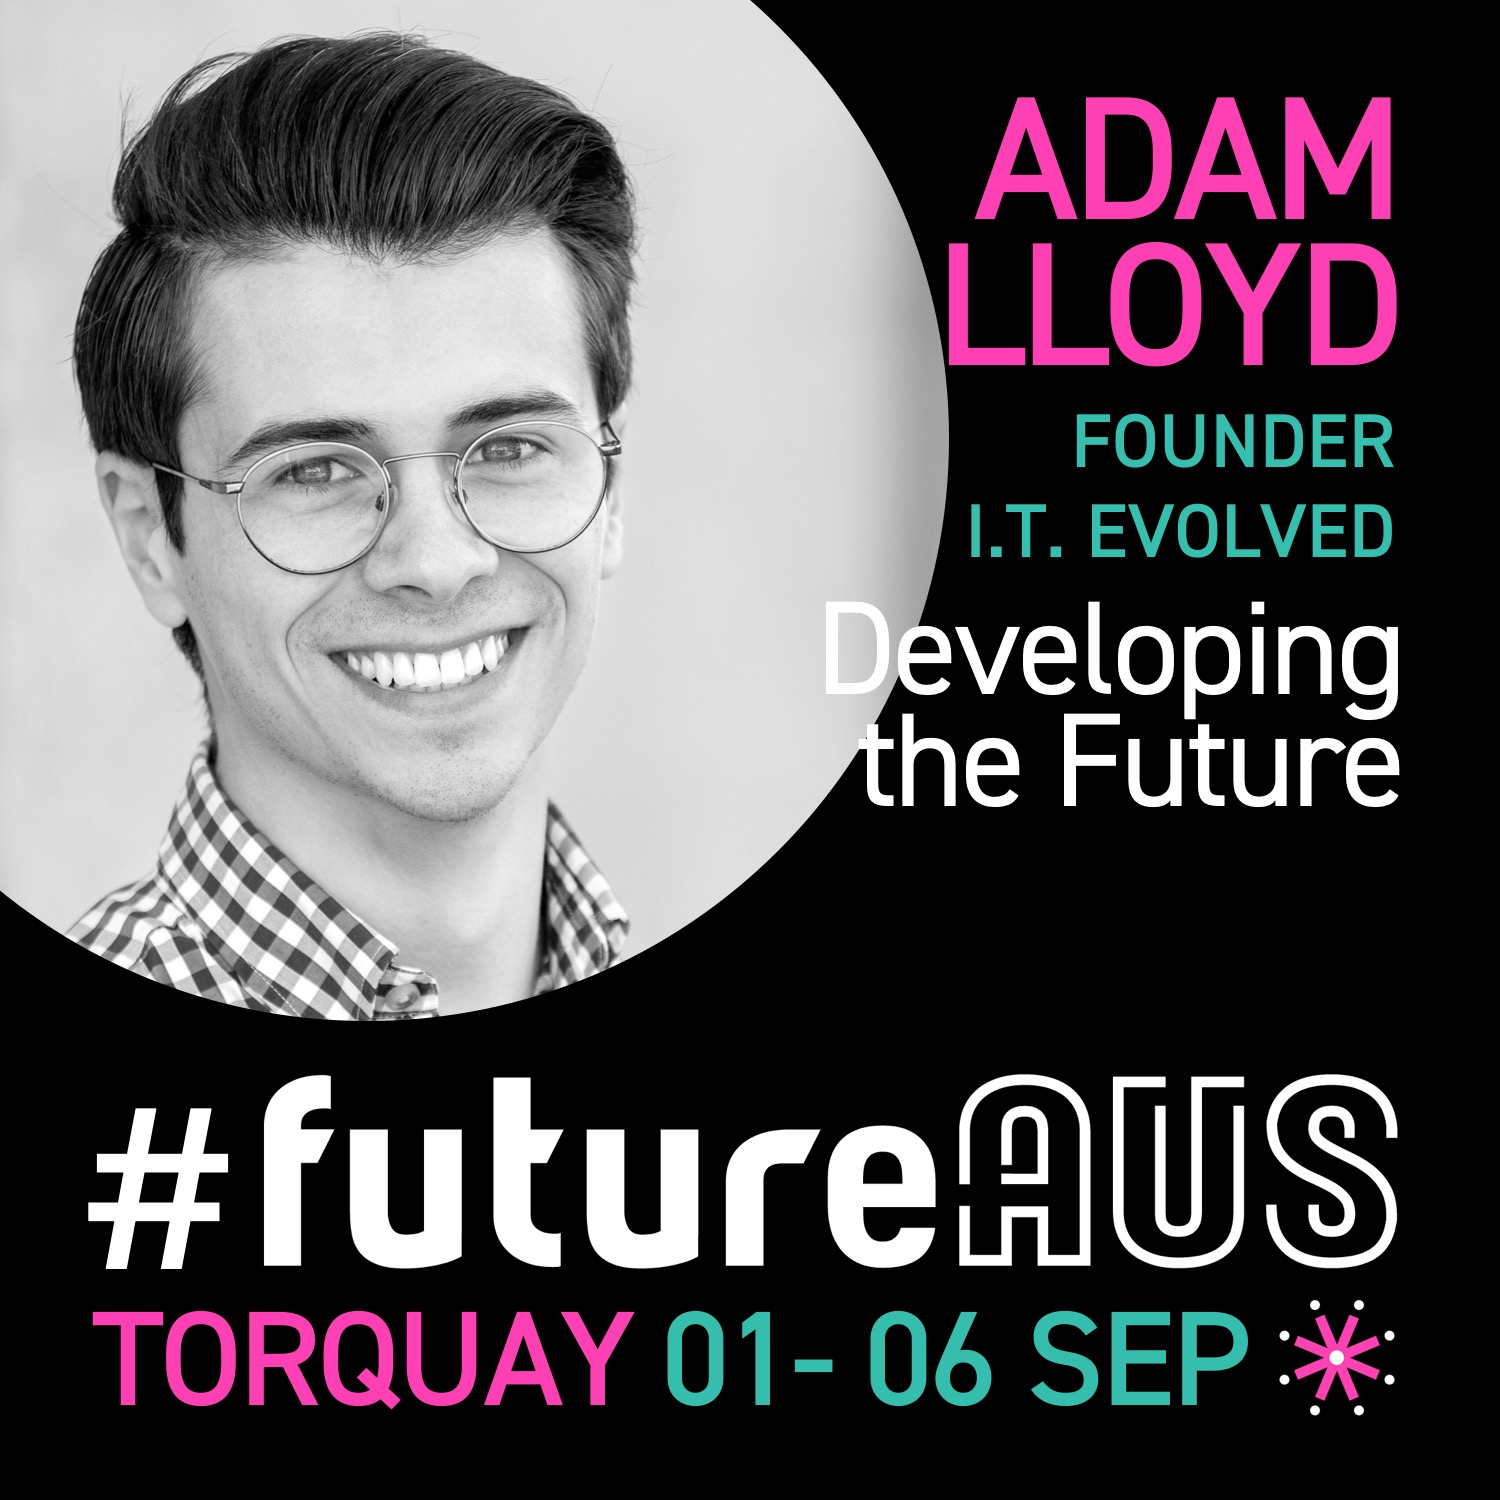 "Adam Lloyd  is the founder of IT Evolved, which has operated within the Victorian region providing quality managed IT services over the last 5 years. Adam also consults on rail systems engineering projects & specialist security projects, providing expertise in complex technical engagements. Adam is focused on developing the future of STEM education; he facilitates STEM units at Geelong's all-girl college Sacred Heart, with an aim to foster the next generation of women in STEM. Using his diverse background, Adam is focused on outreach, developing STEM and innovation in his local community. Come and hear Adam talk about "" developing the future"""